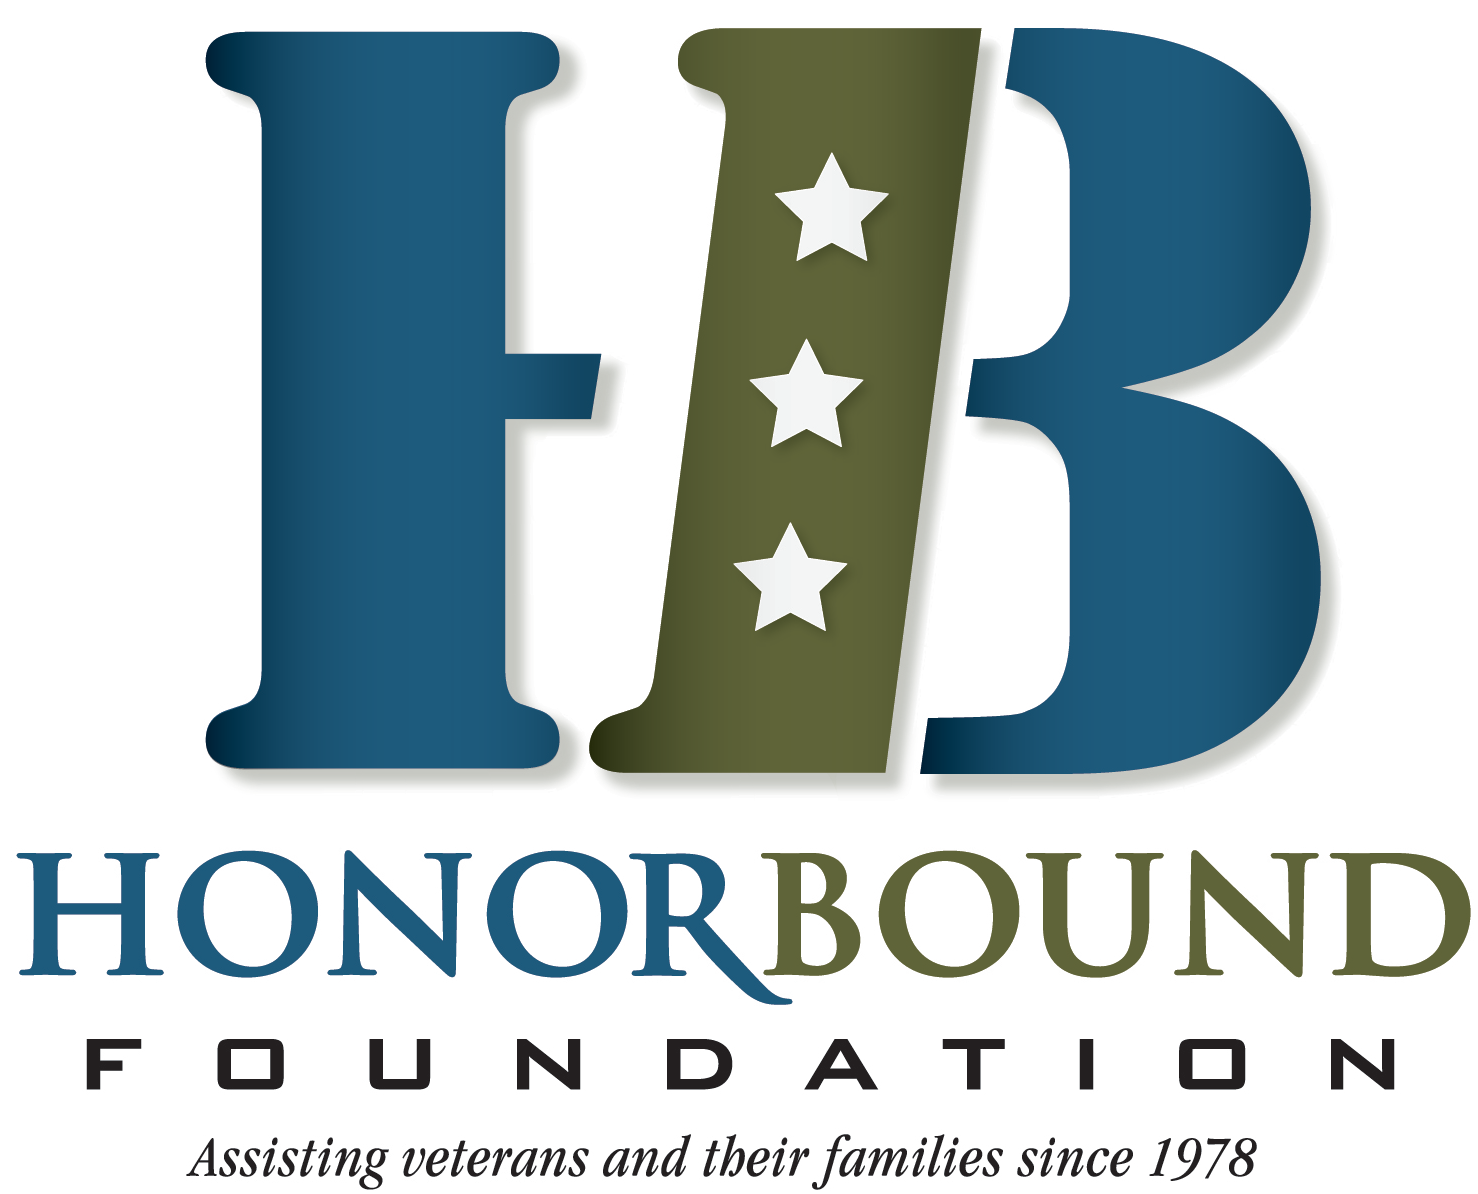 Colorado Car Donations - HonorBound Foundation - DonatecarUSA.com